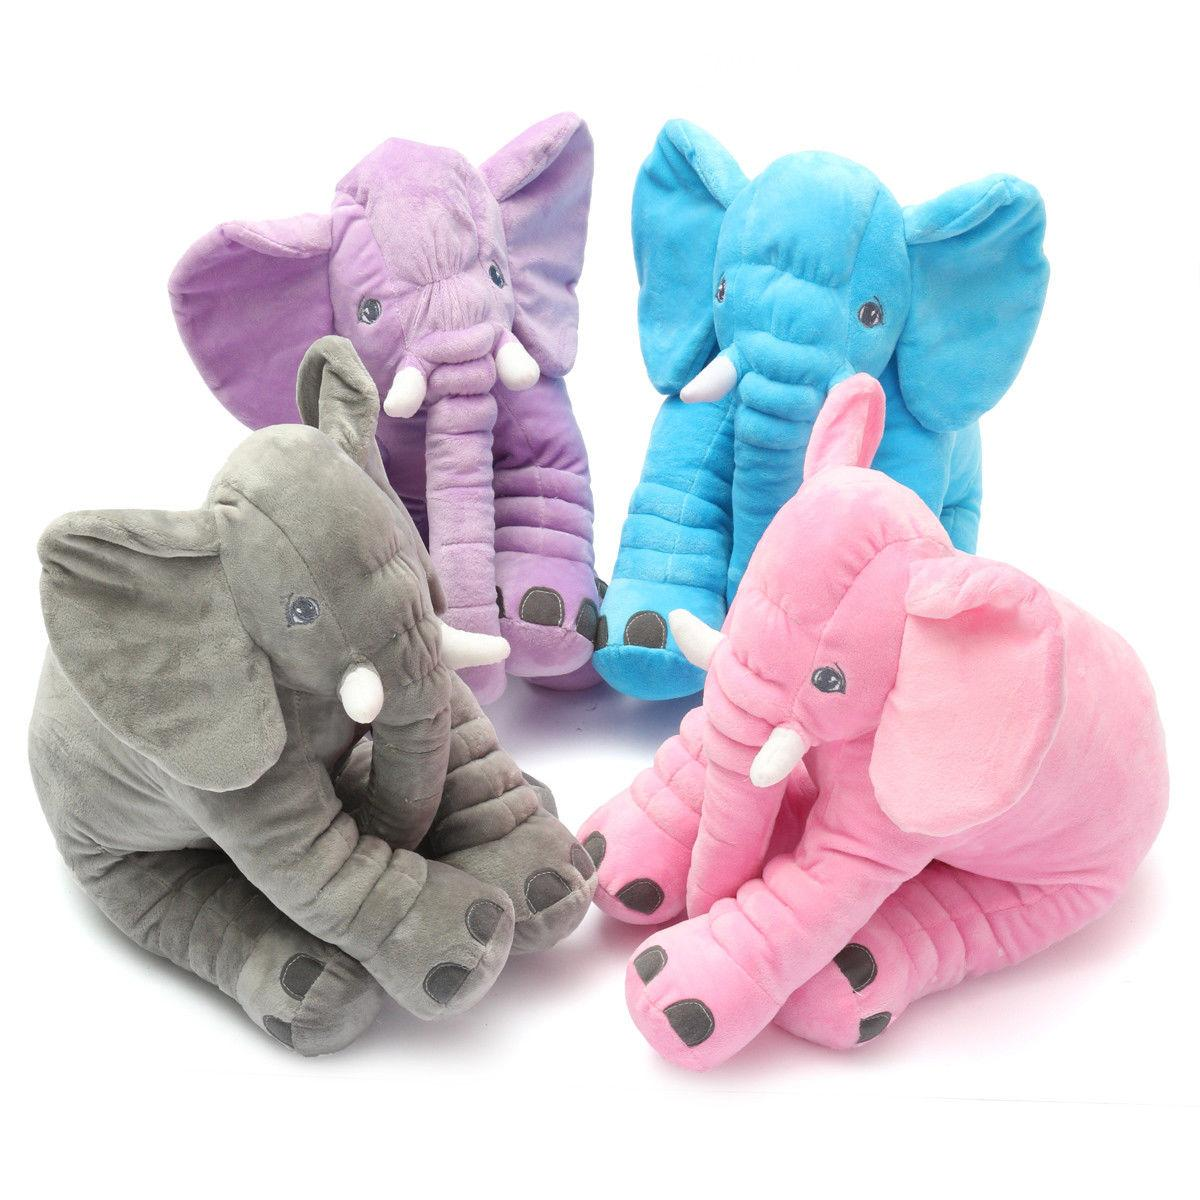 Elephant Stuff Toys Cushion Baby